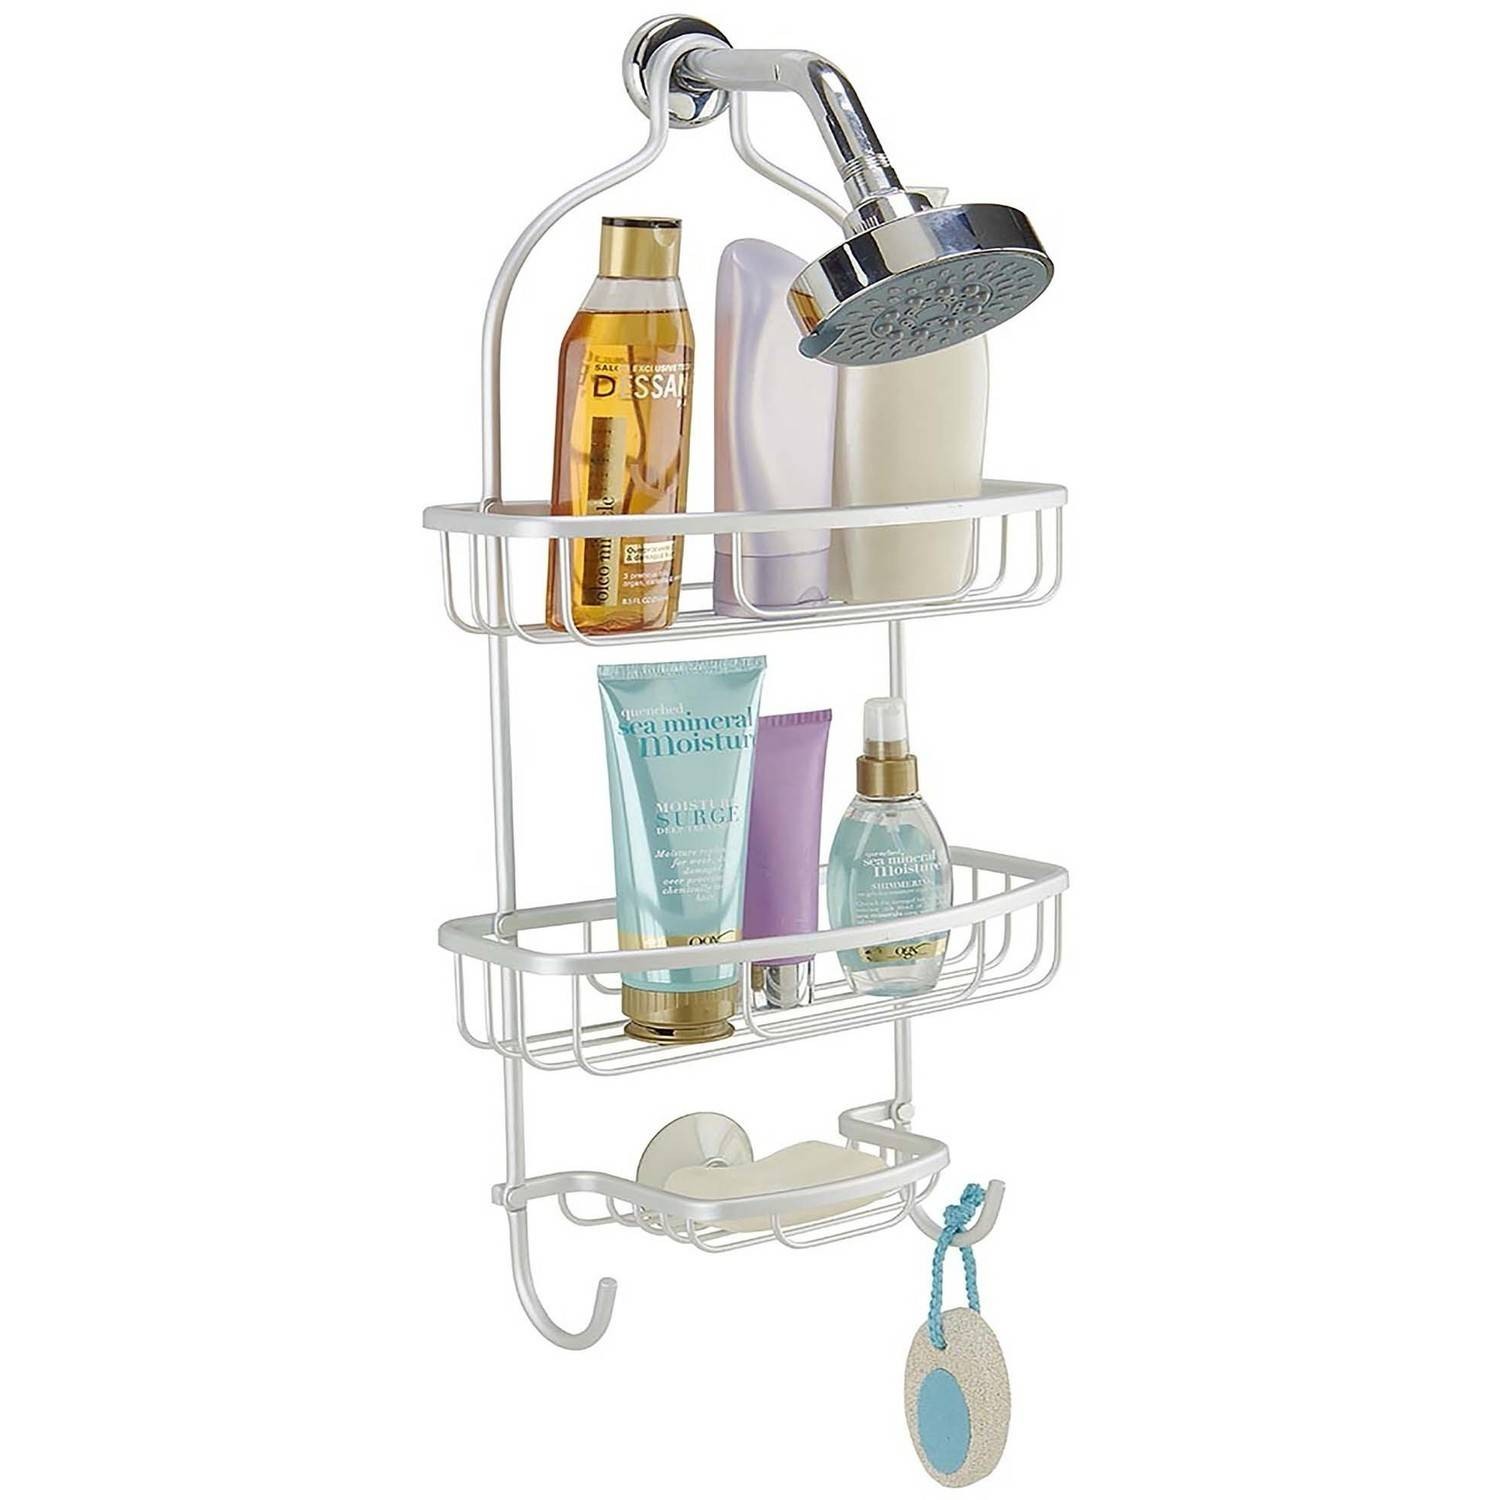 Bath Bliss Flat Wire Shower Caddy, Aluminum by Kennedy International, INC.